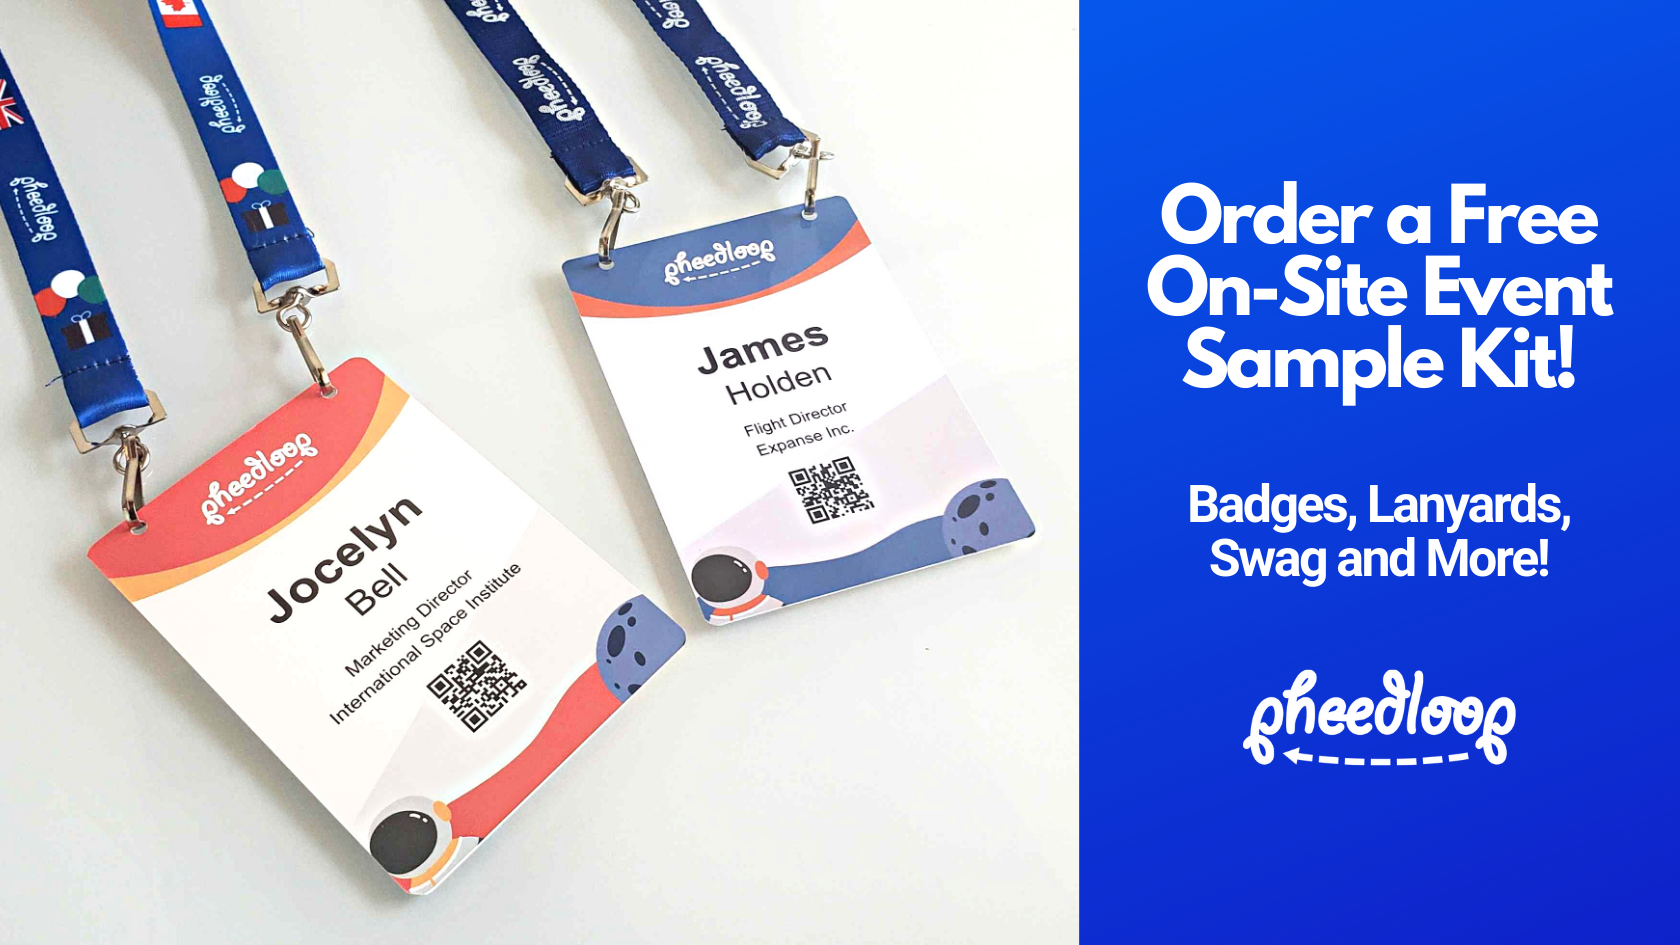 Order Your Free On-Site Events Sample Kit Today! Custom Badges, Lanyards, Swag, and Demos of PheedLoop OnSight!